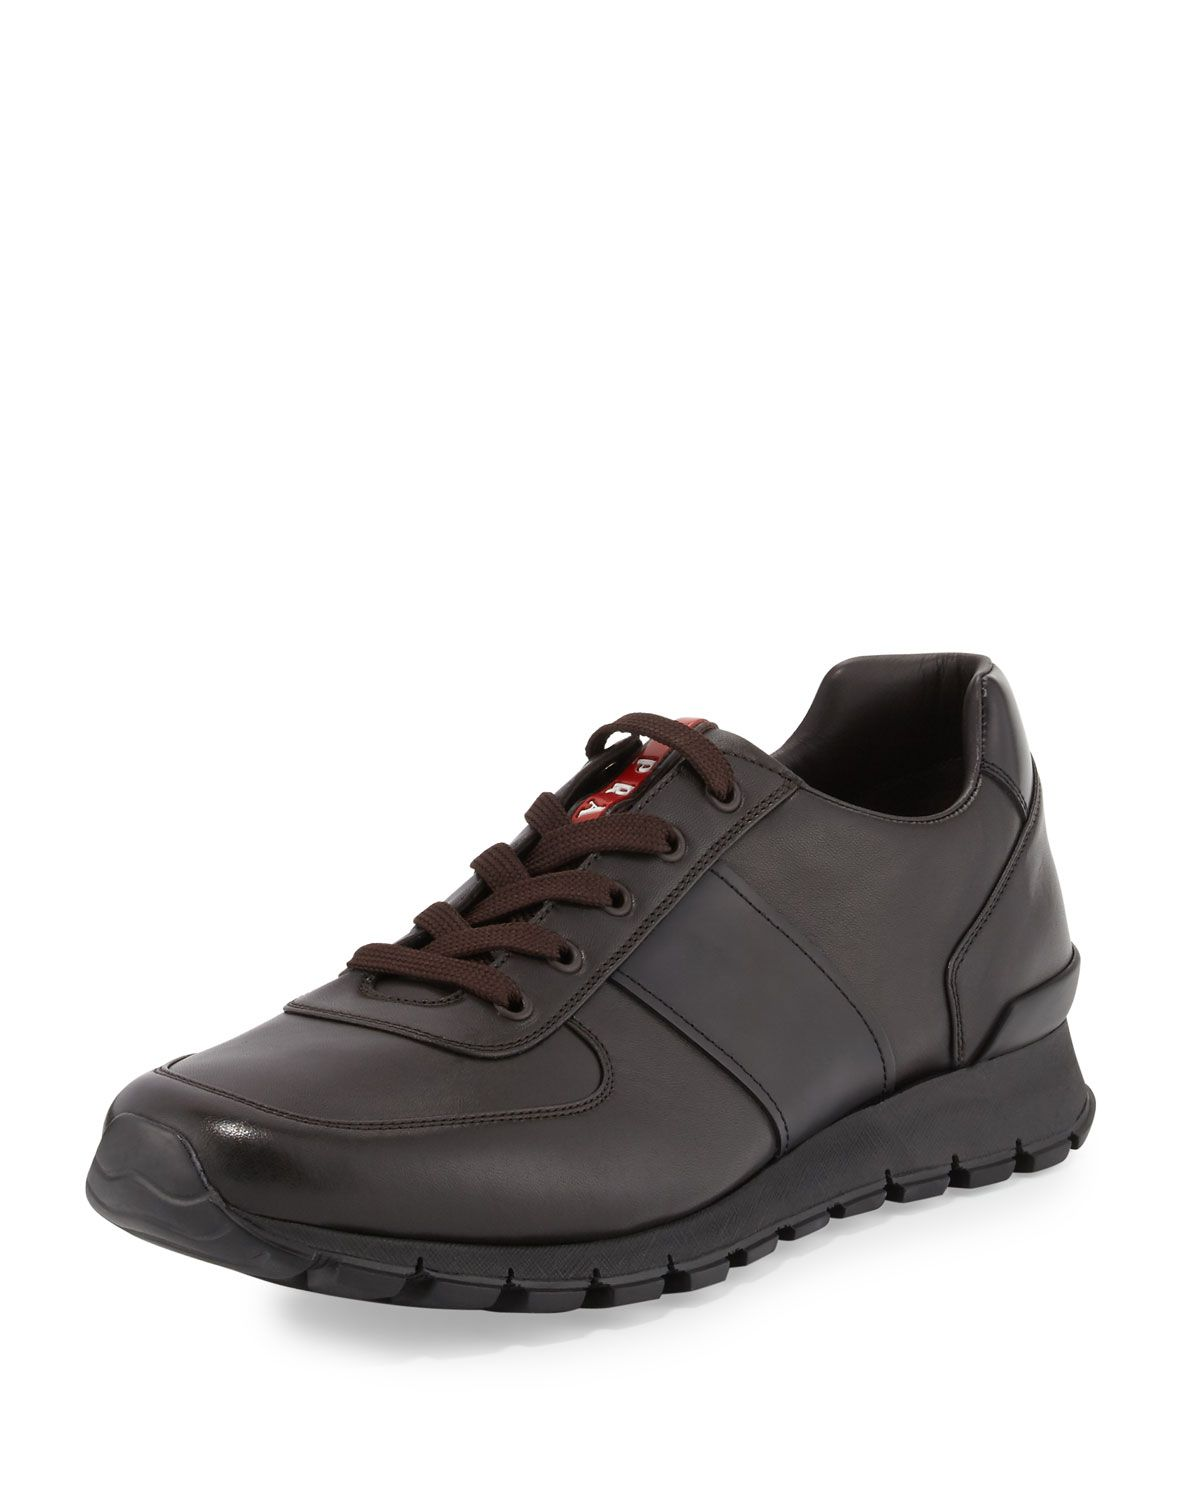 2c9904e144b9 PRADA LEATHER RUNNING SNEAKER, BROWN.  prada  shoes   Prada ...